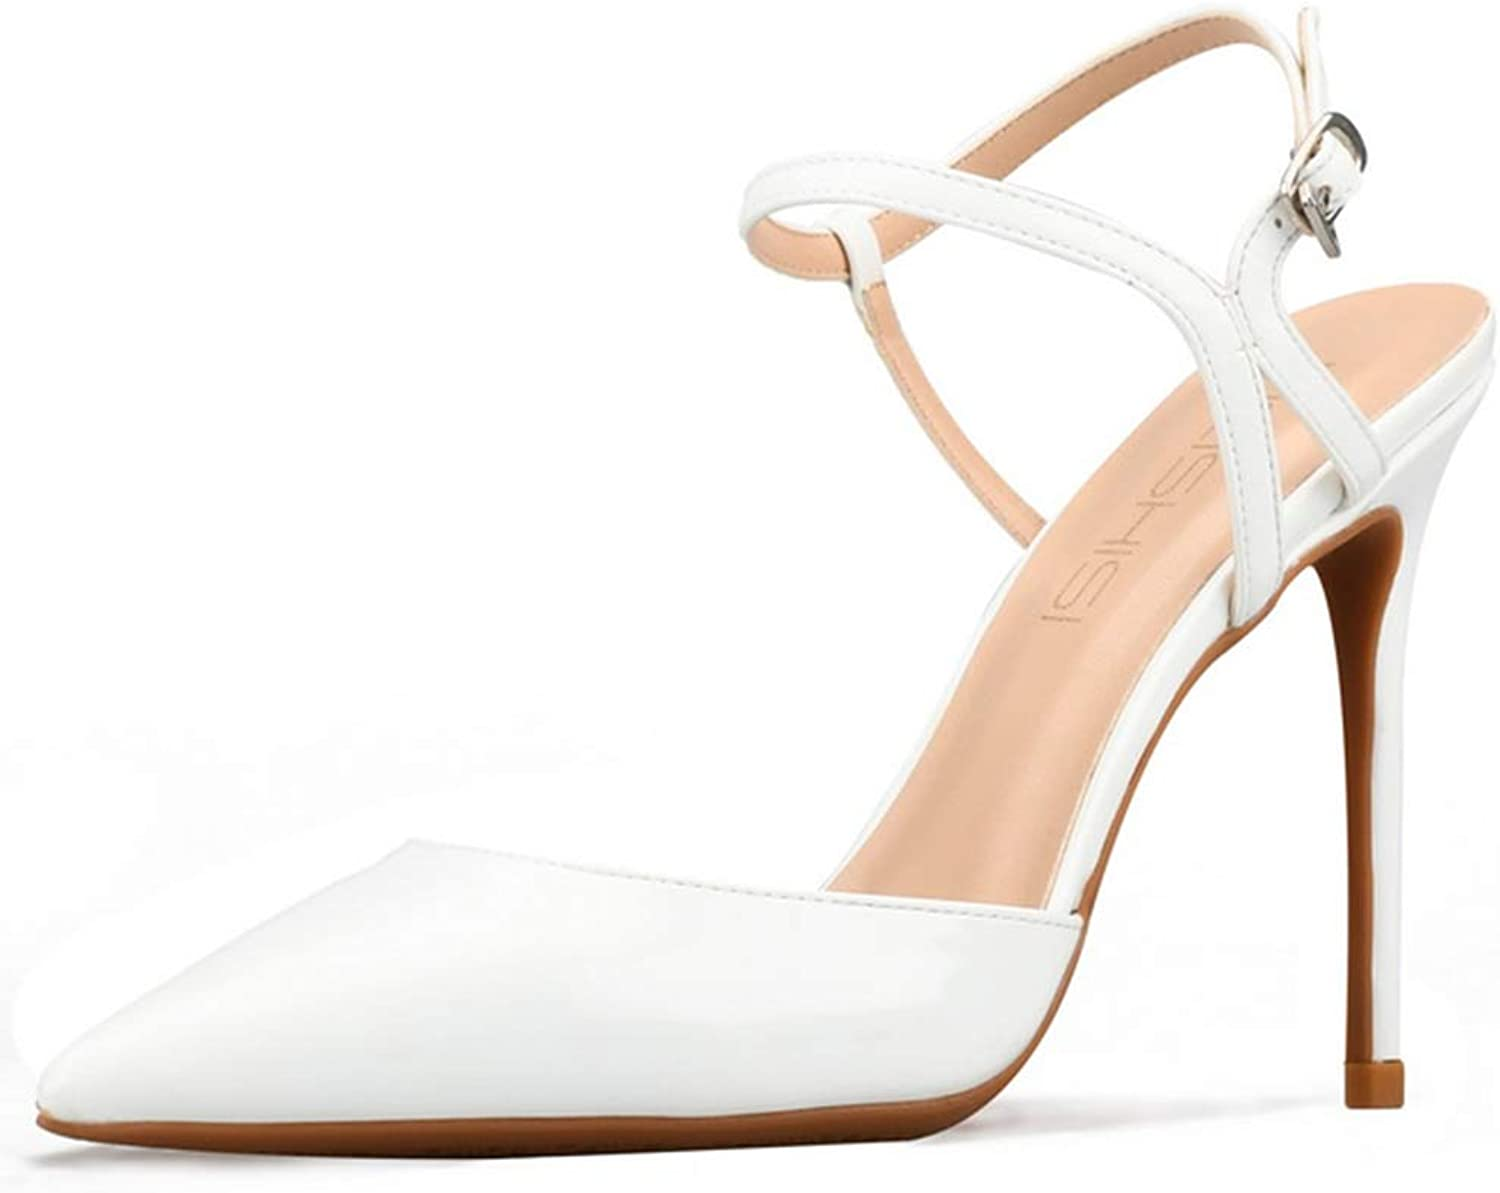 Women's Ankle-Strap Stiletto shoes, Fashion Sexy Sling Back Ladies Sandals 10cm Pointed Toe Patent Leather Pumps